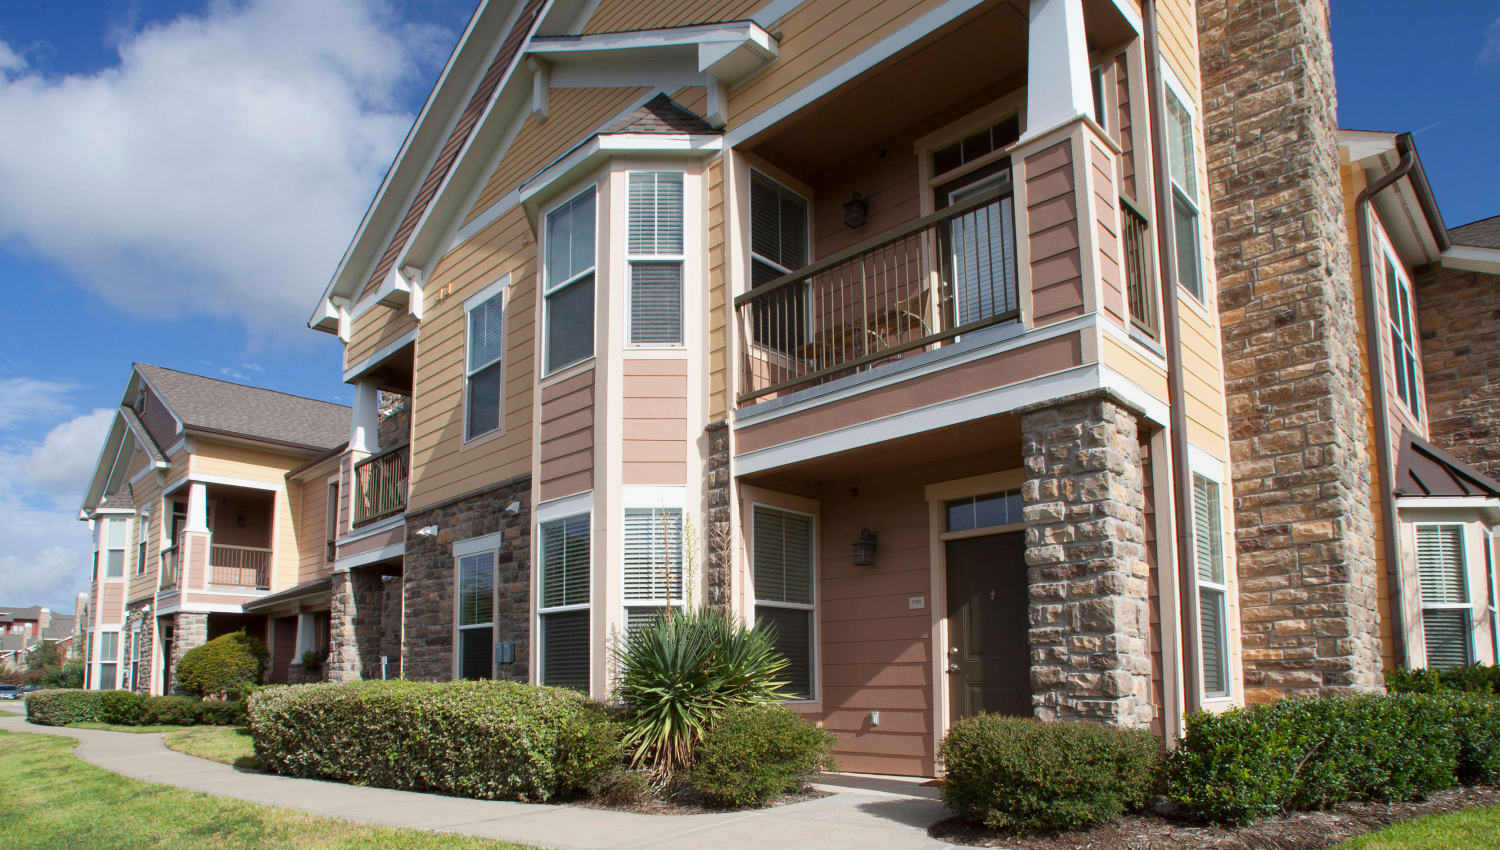 Resident buildings surrounded by professionally maintained landscaping at Olympus Katy Ranch in Katy, Texas